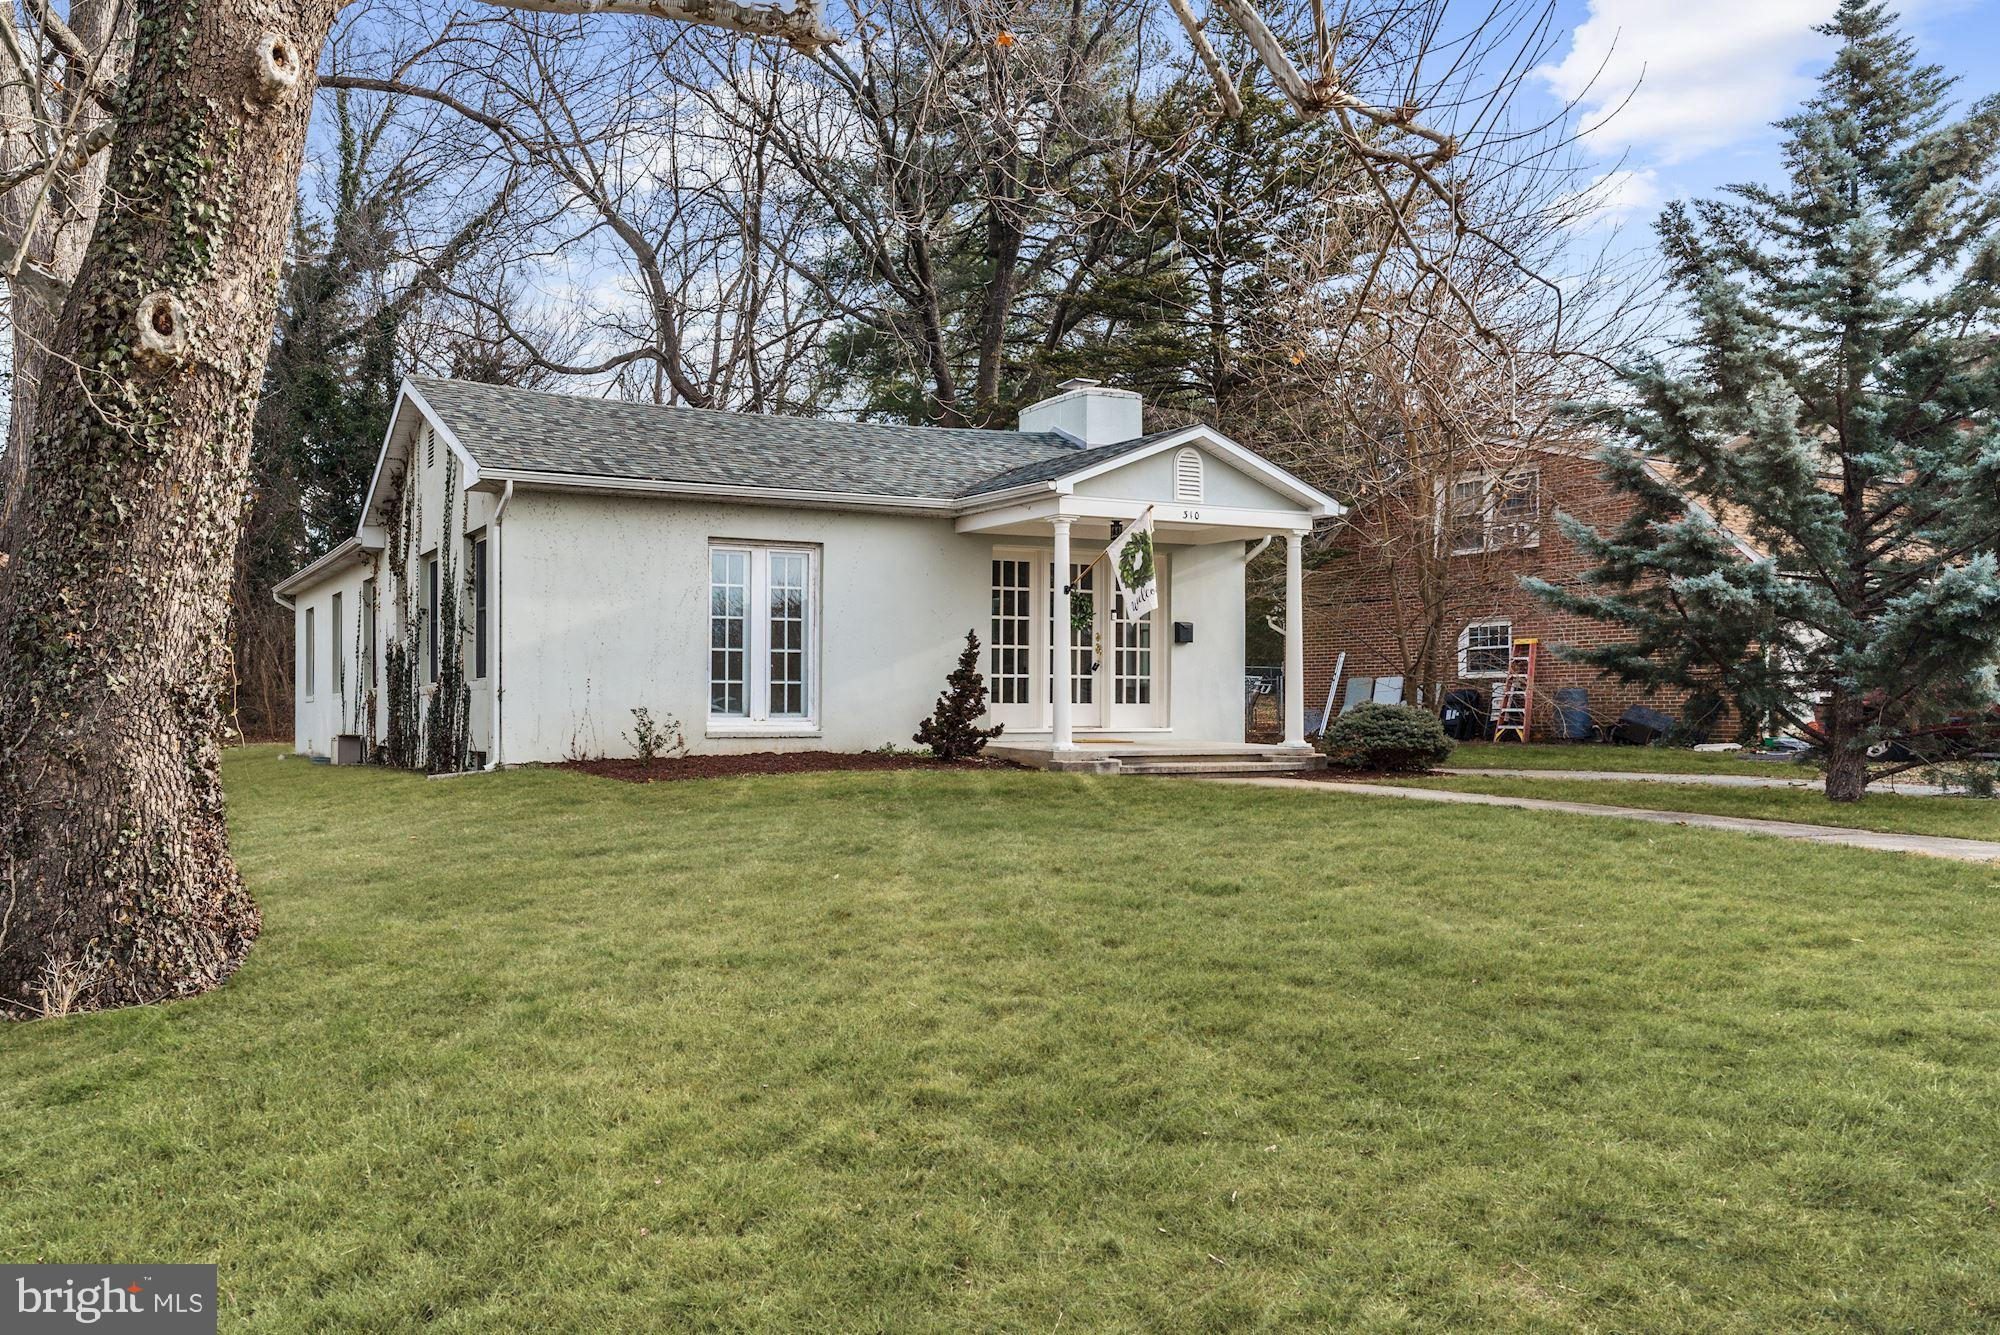 Located in the town of Berryville this 3 bedroom, 2 bath classic mid-century house has been lovingly